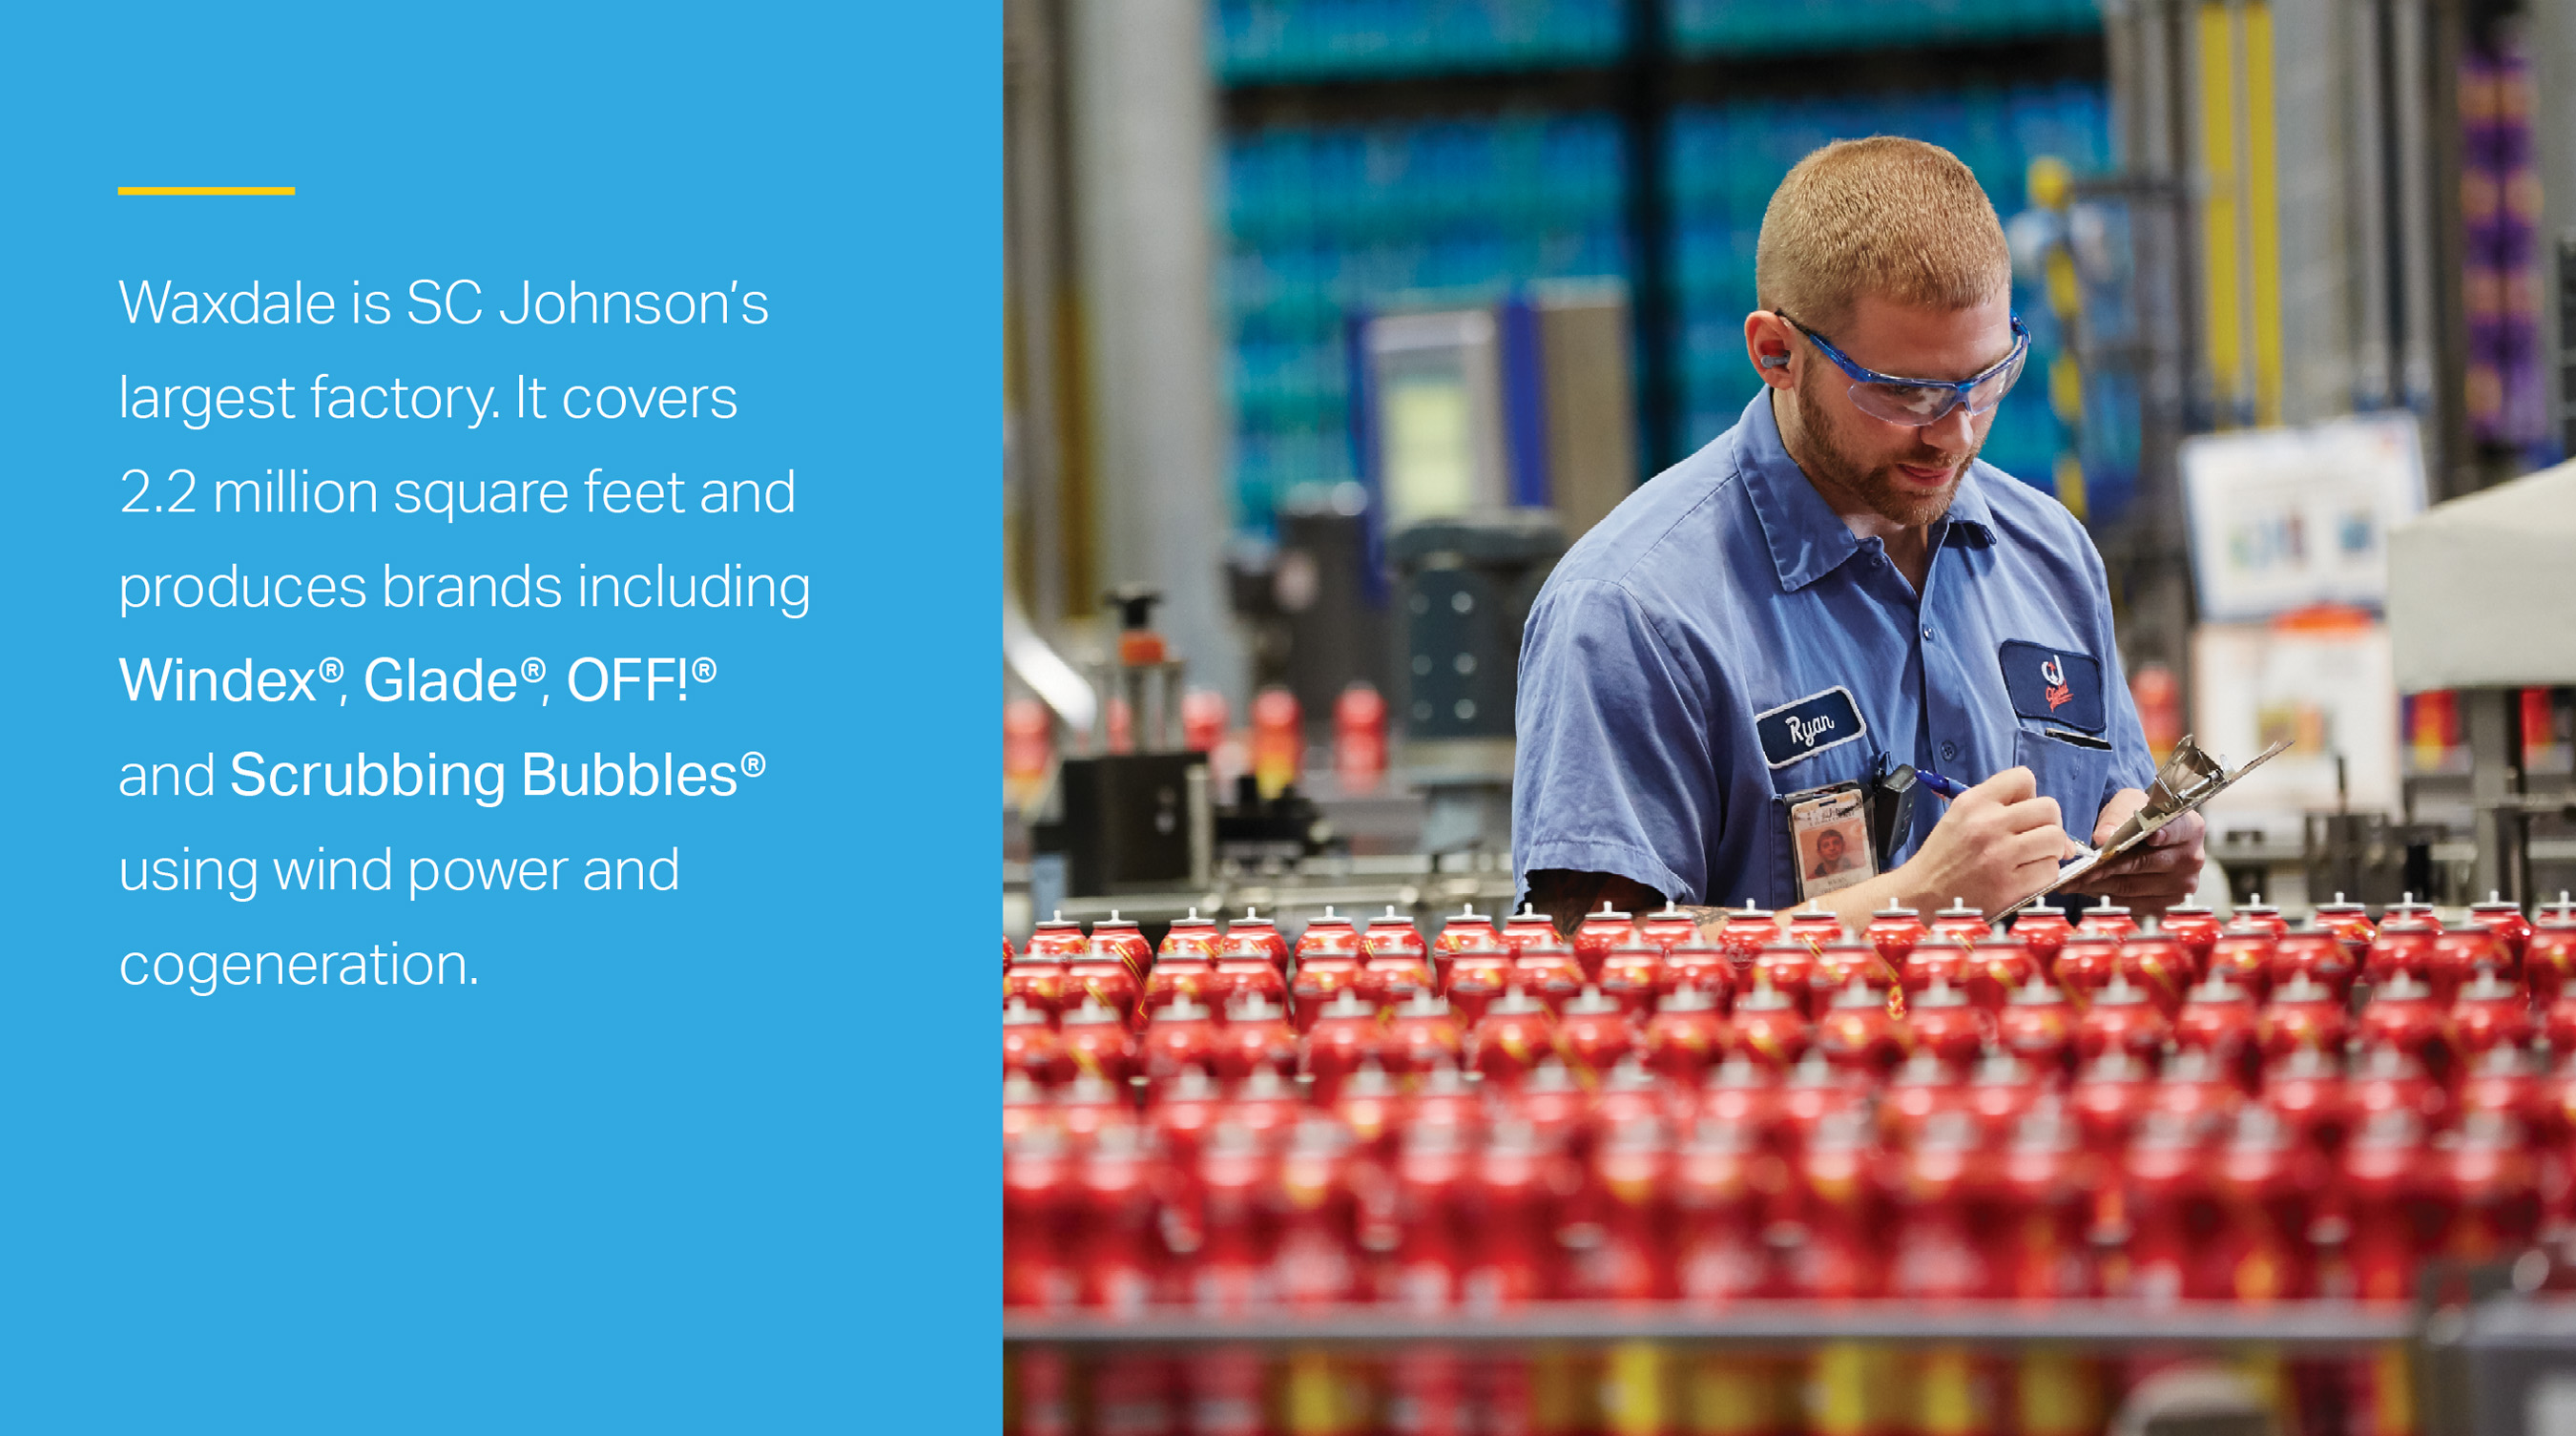 SC Johnson's largest factory generates 85% of its energy from cleaner-burning natural gas.